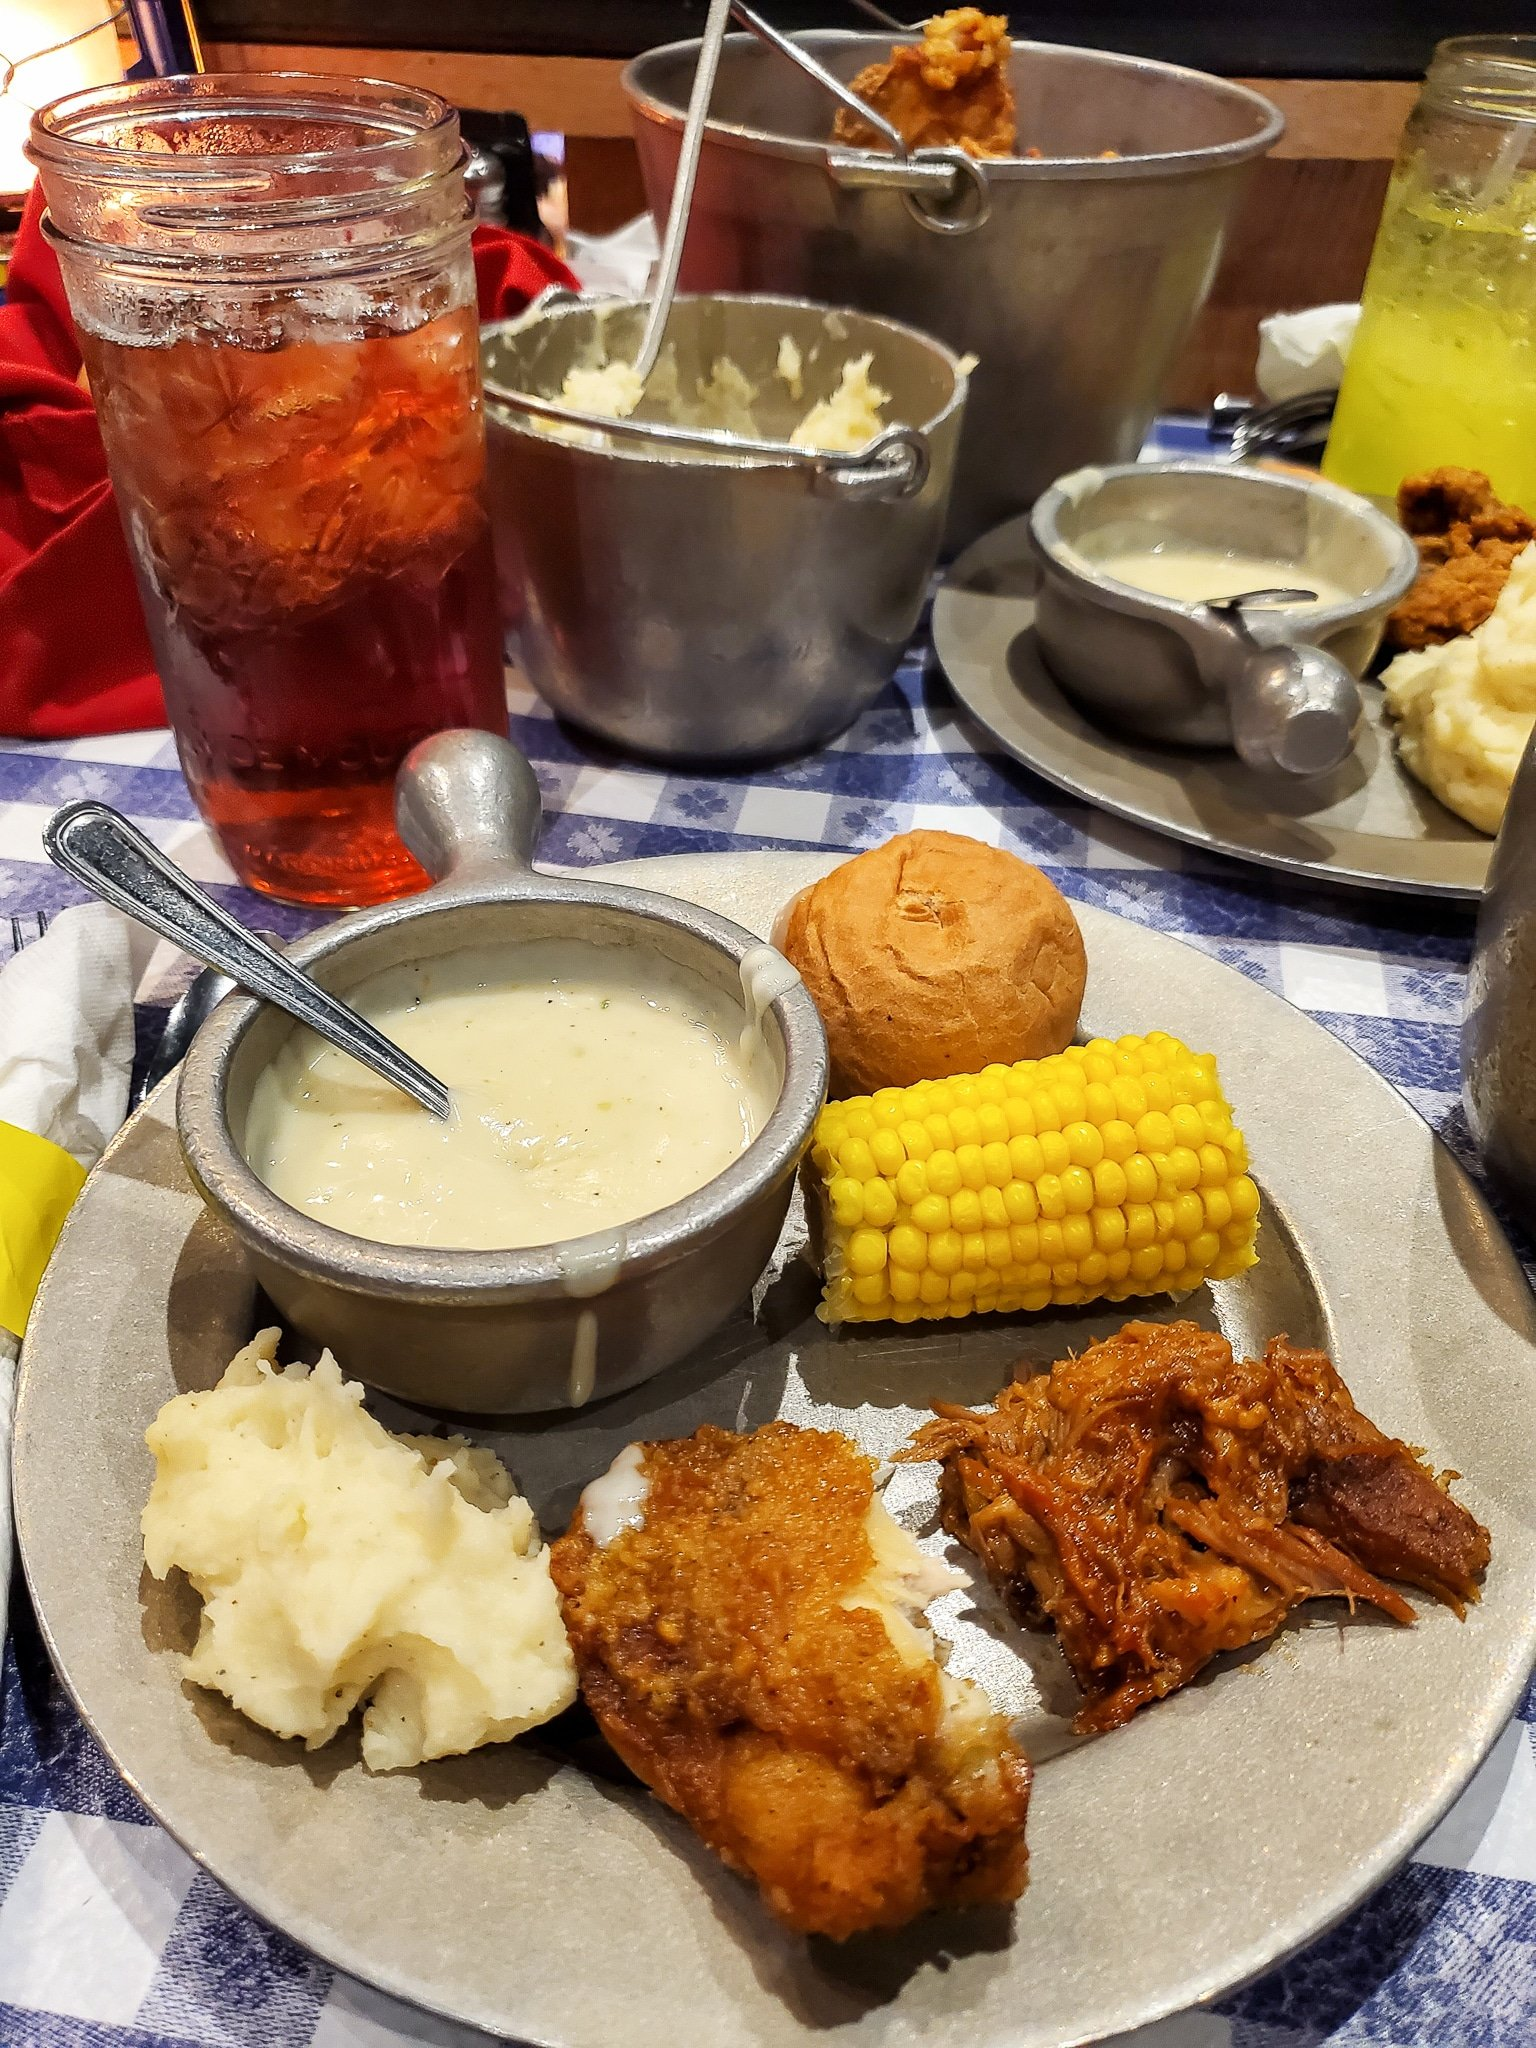 Hatfield and McCoy Family Feud Dinner Show. Nothing says entertainment like a good family feud in the Hatfield & McCoy Dinner Show. Laugh until your sides hurt in this hilarious show that offers an all you can eat southern style cooking dinner.